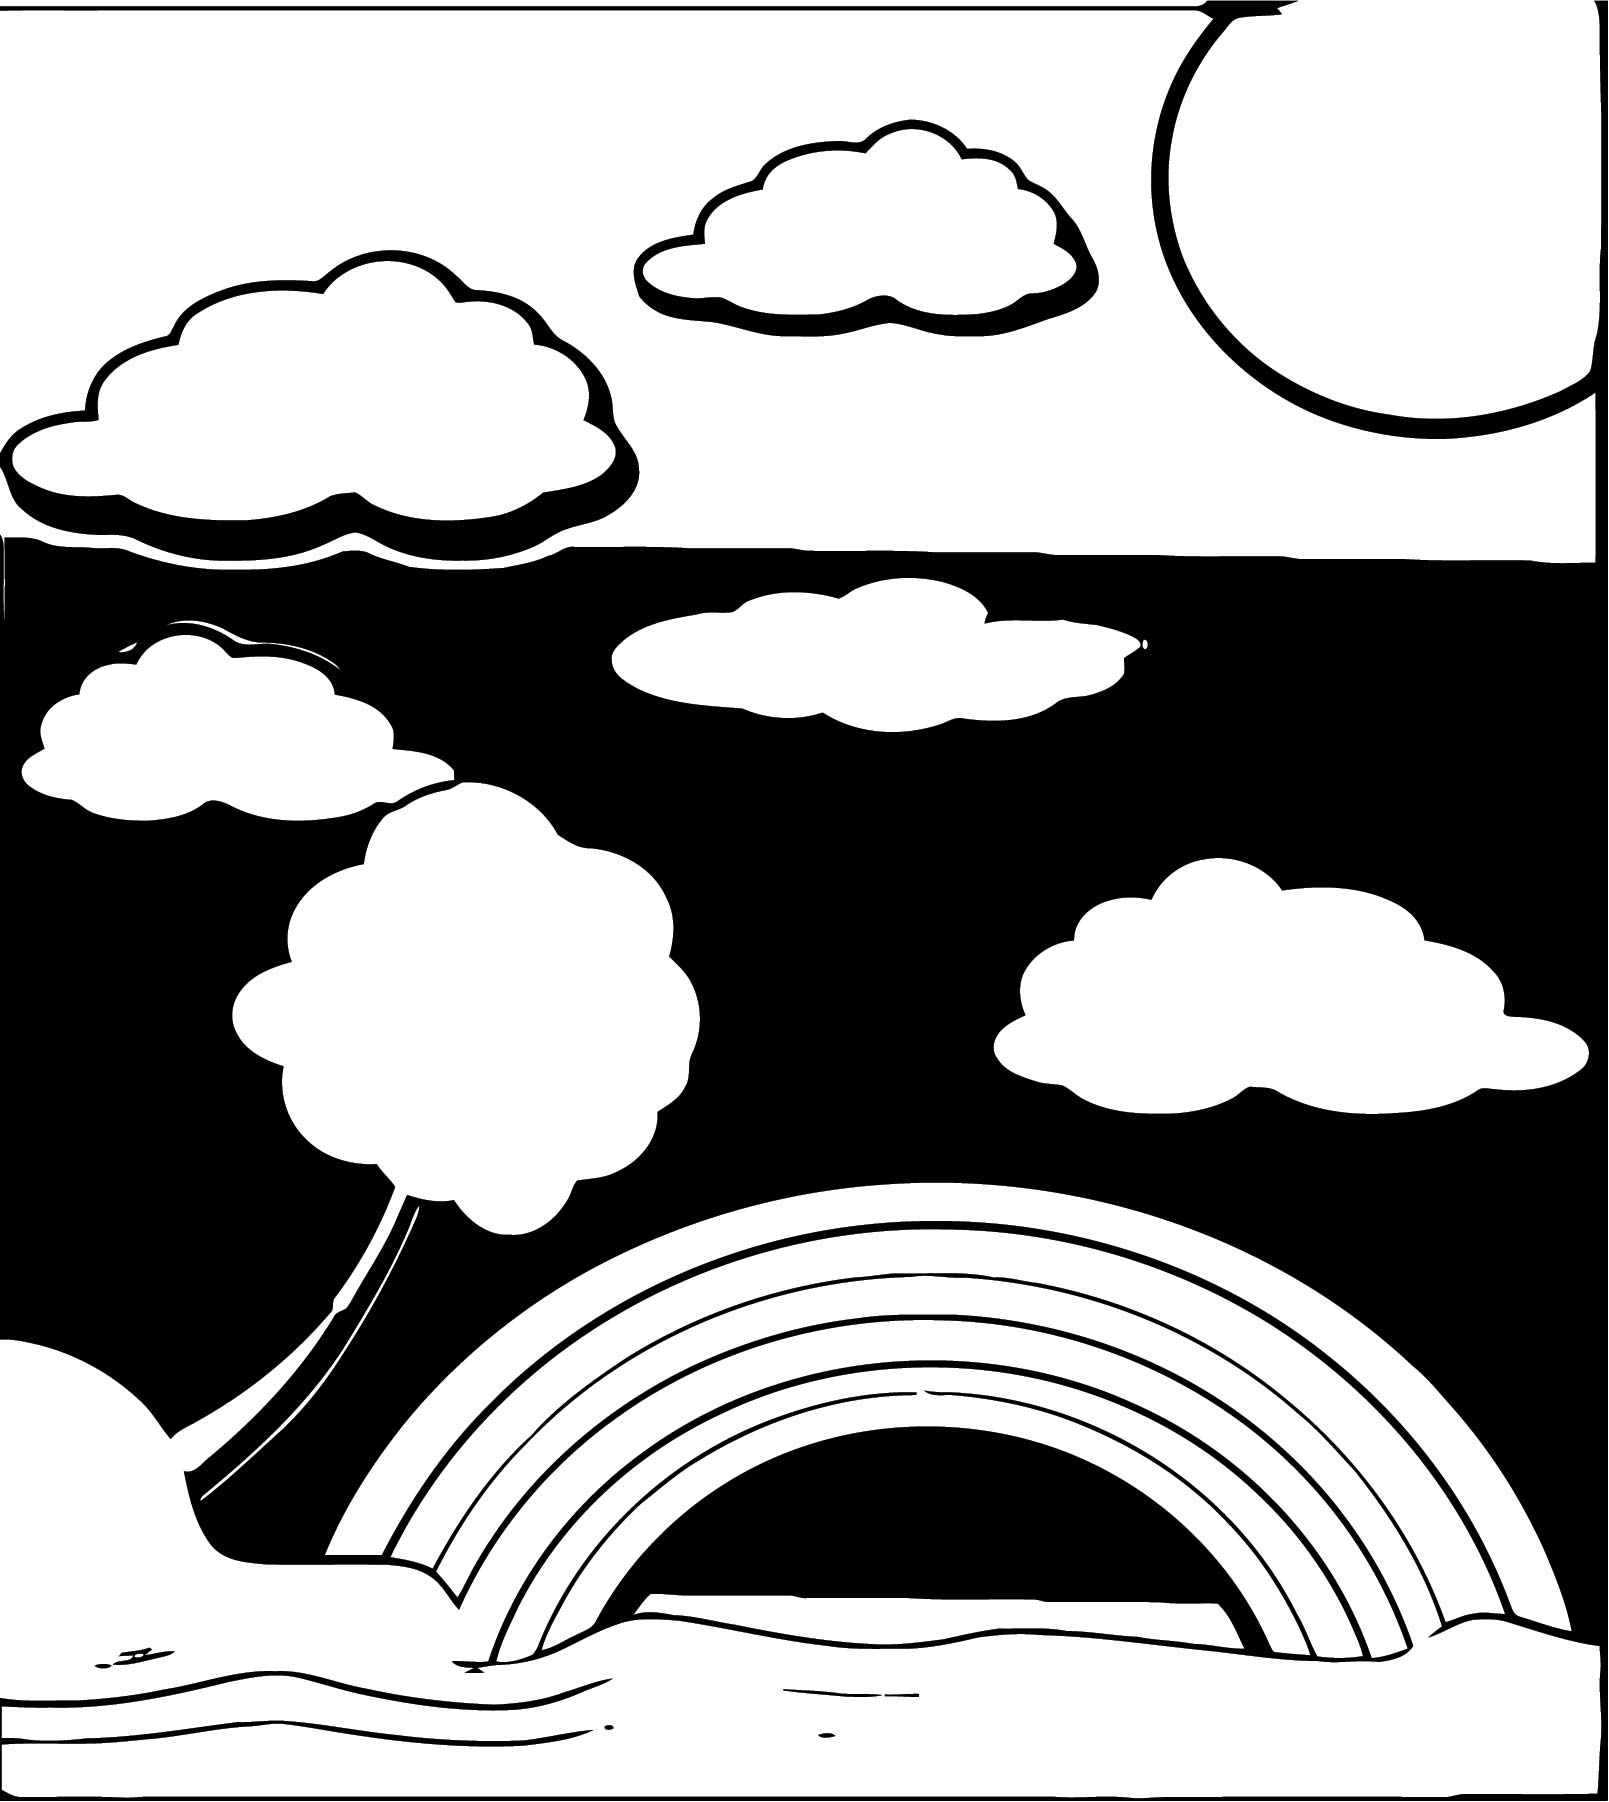 Landscaping Landscape Black White Coloring Page